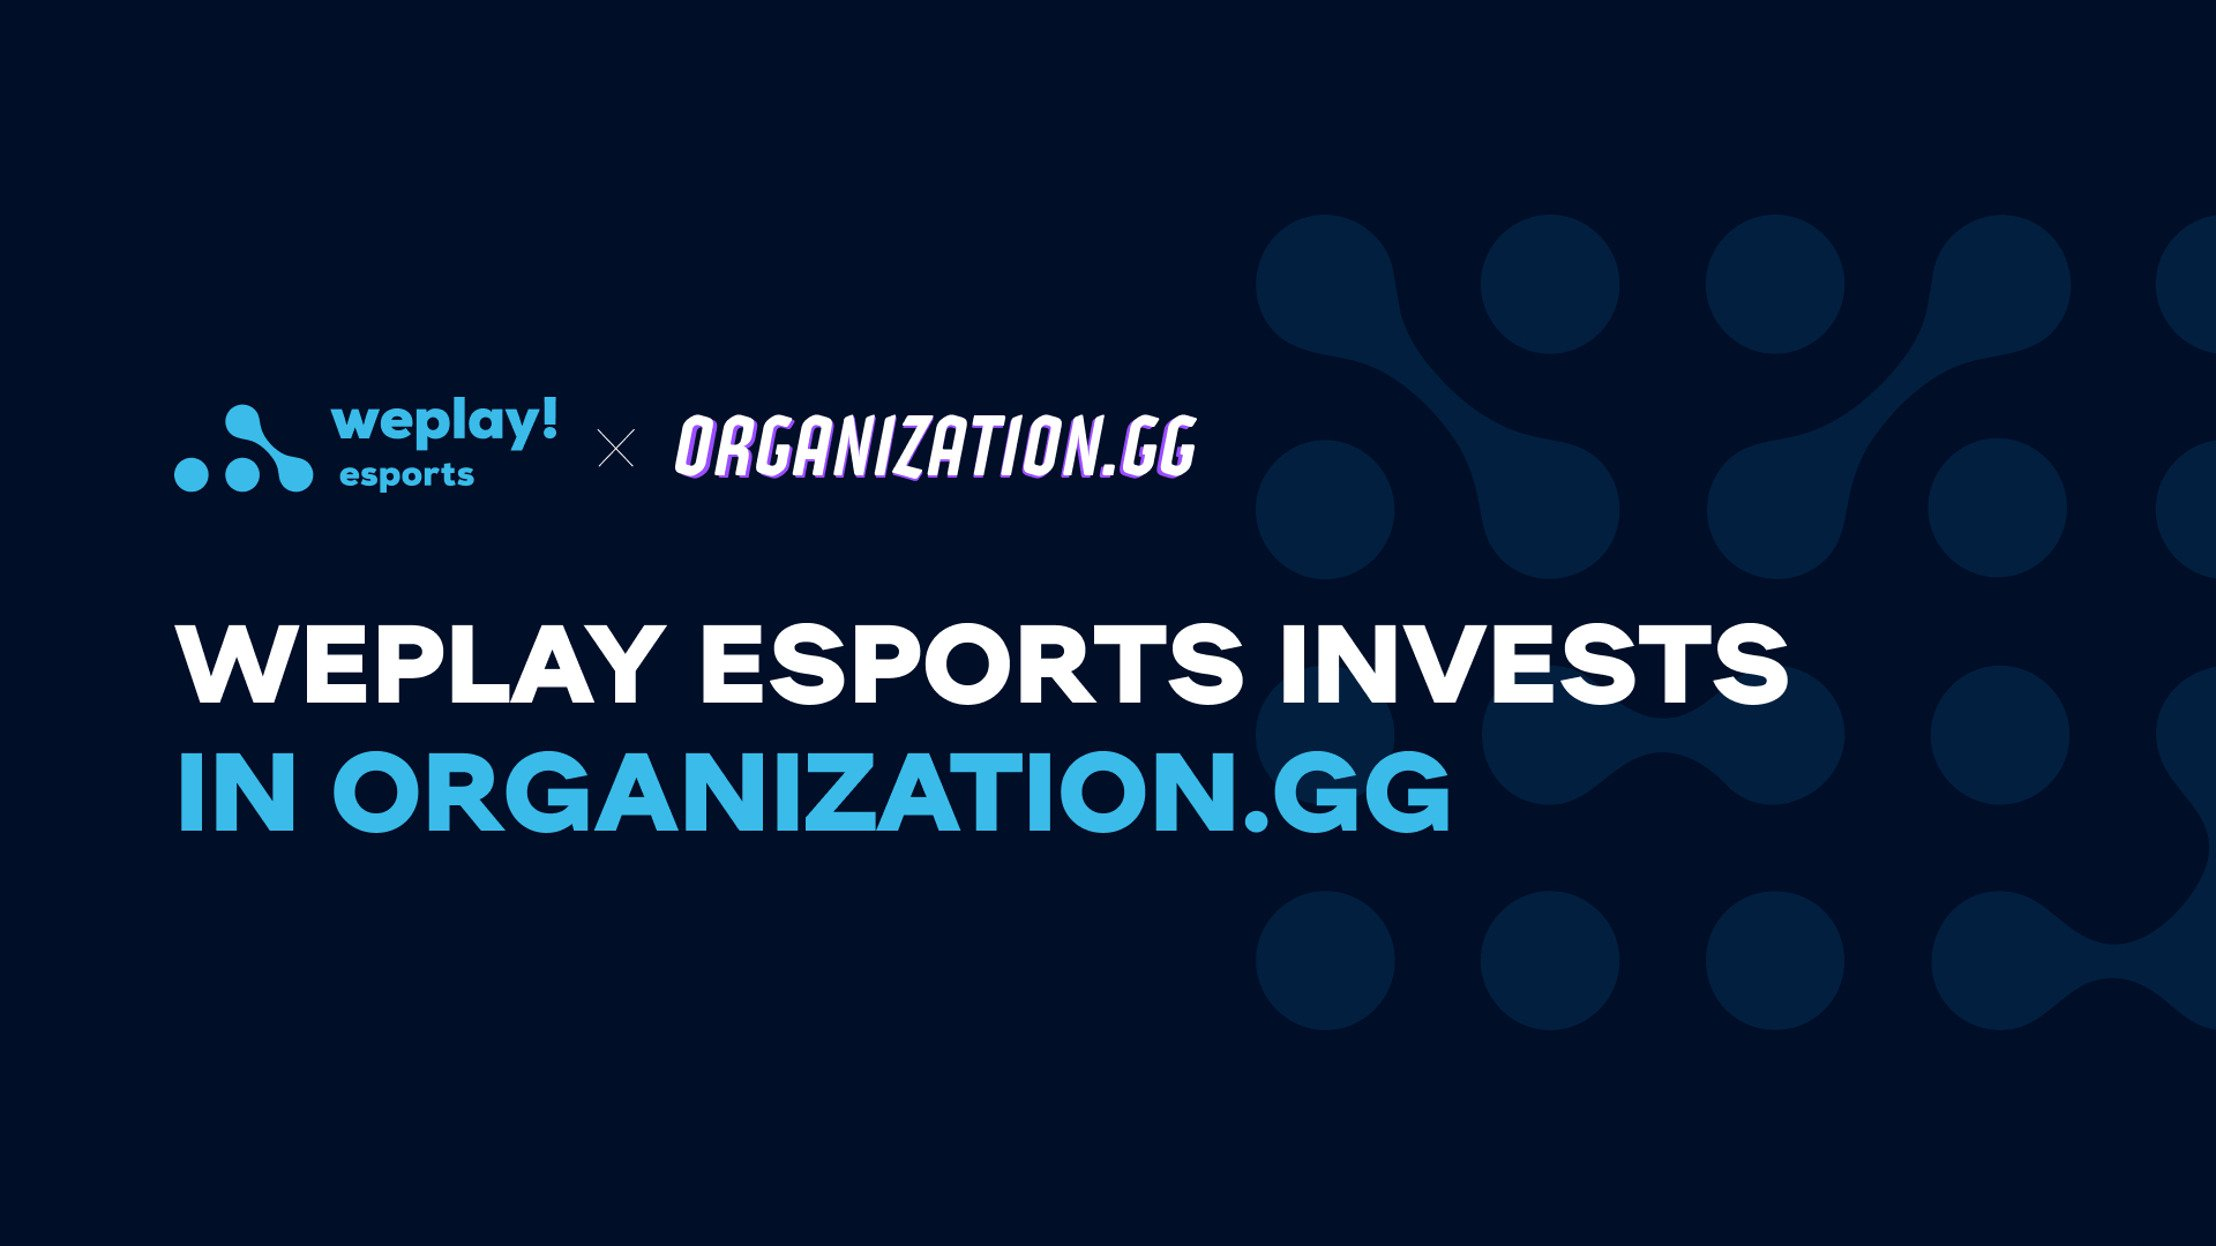 WePlay Esports invests in Organization.GG, a platform for gamers and streamers